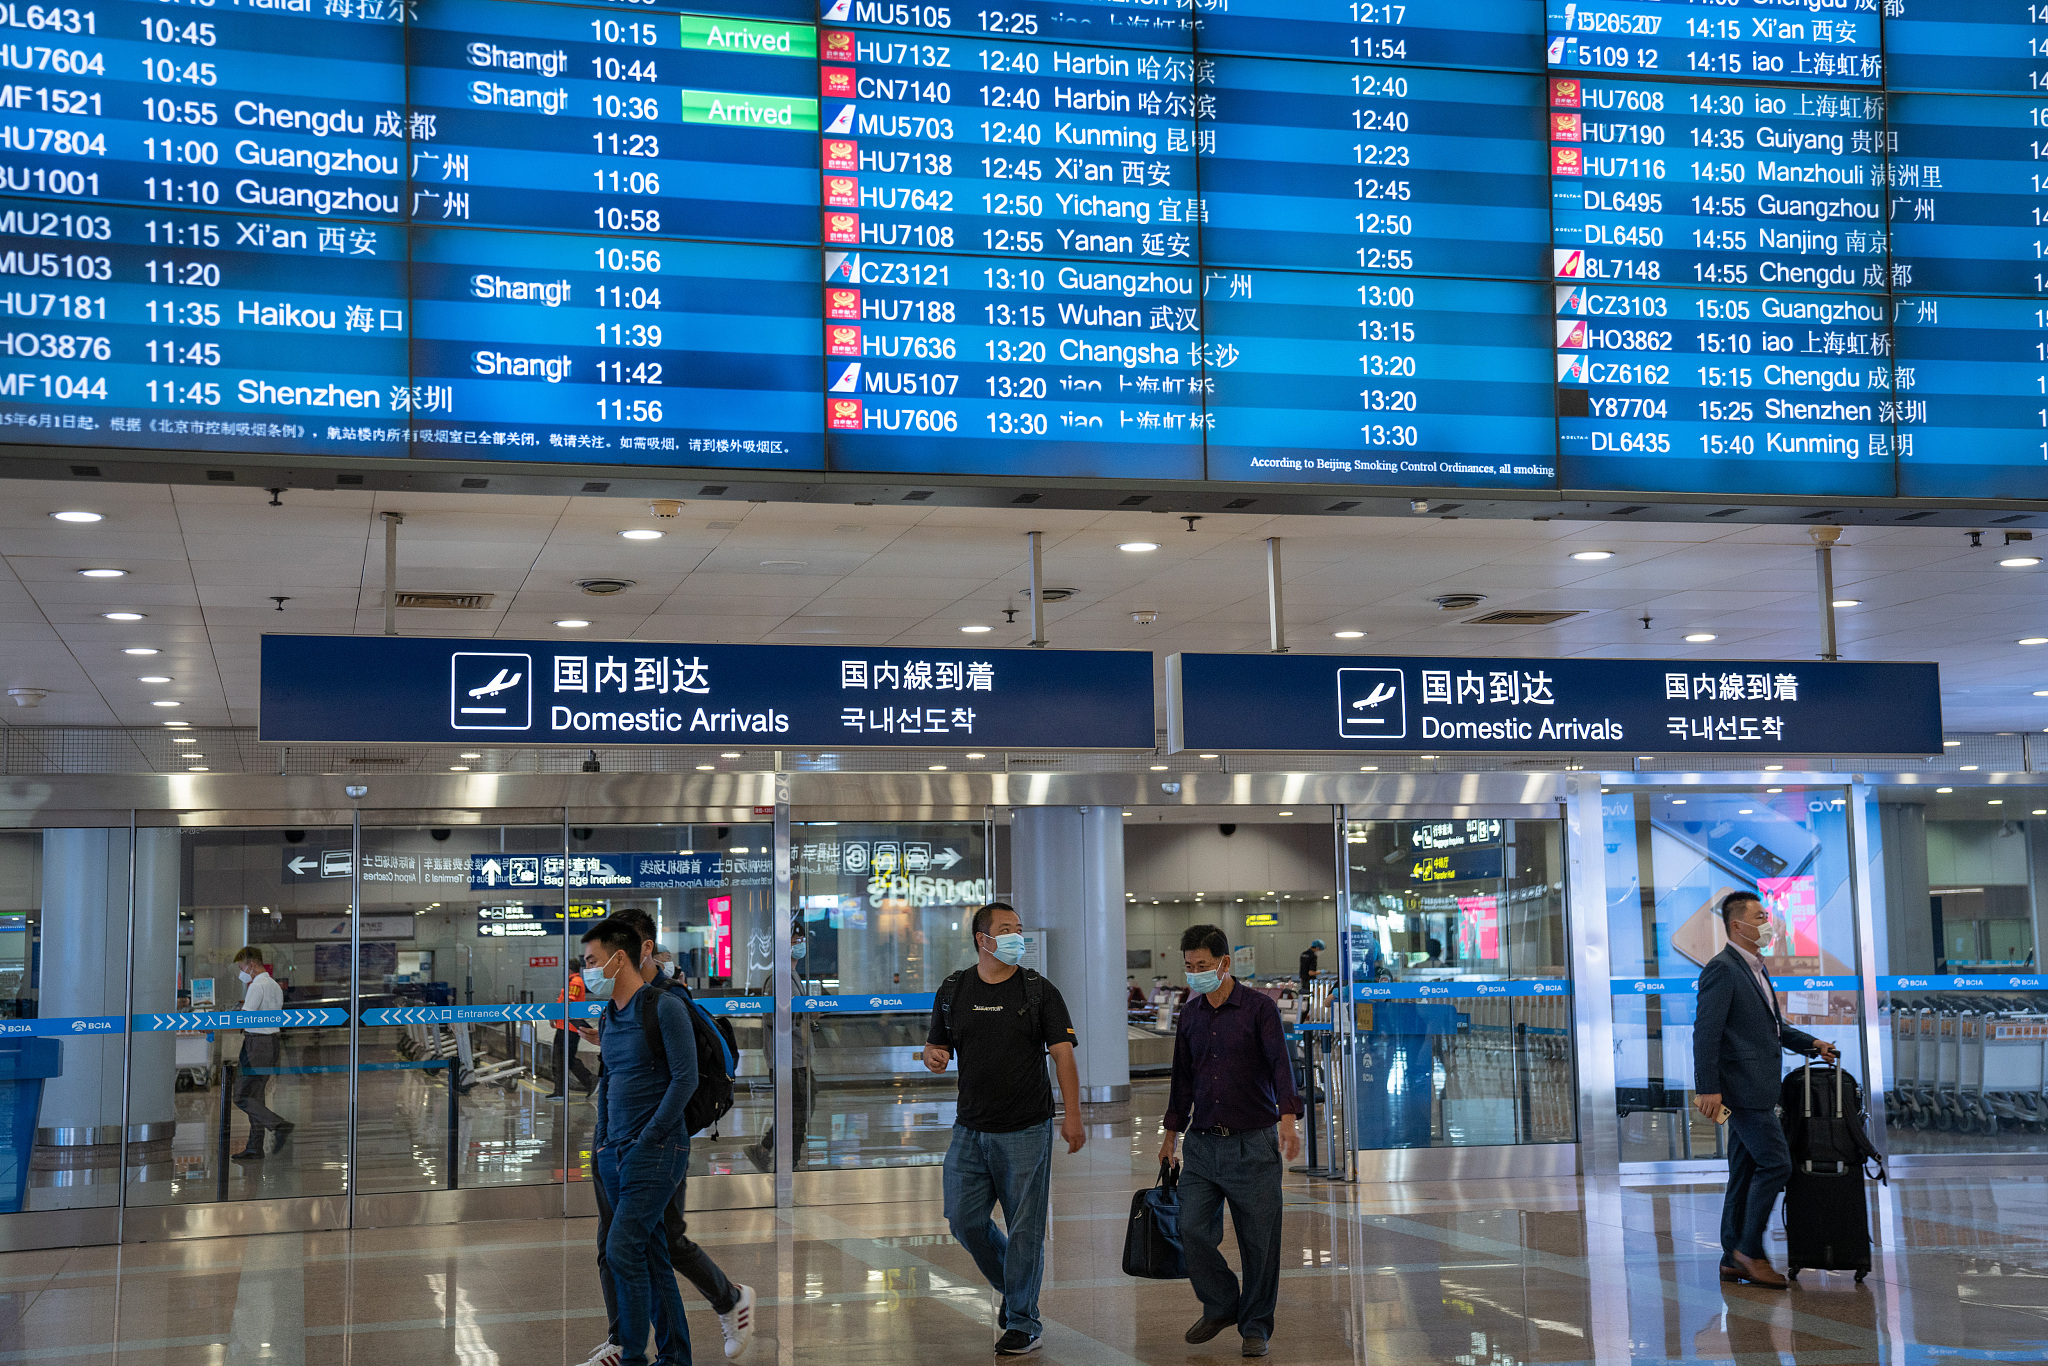 Beijing to tighten control measures as new asymptomatic COVID-19 case reported